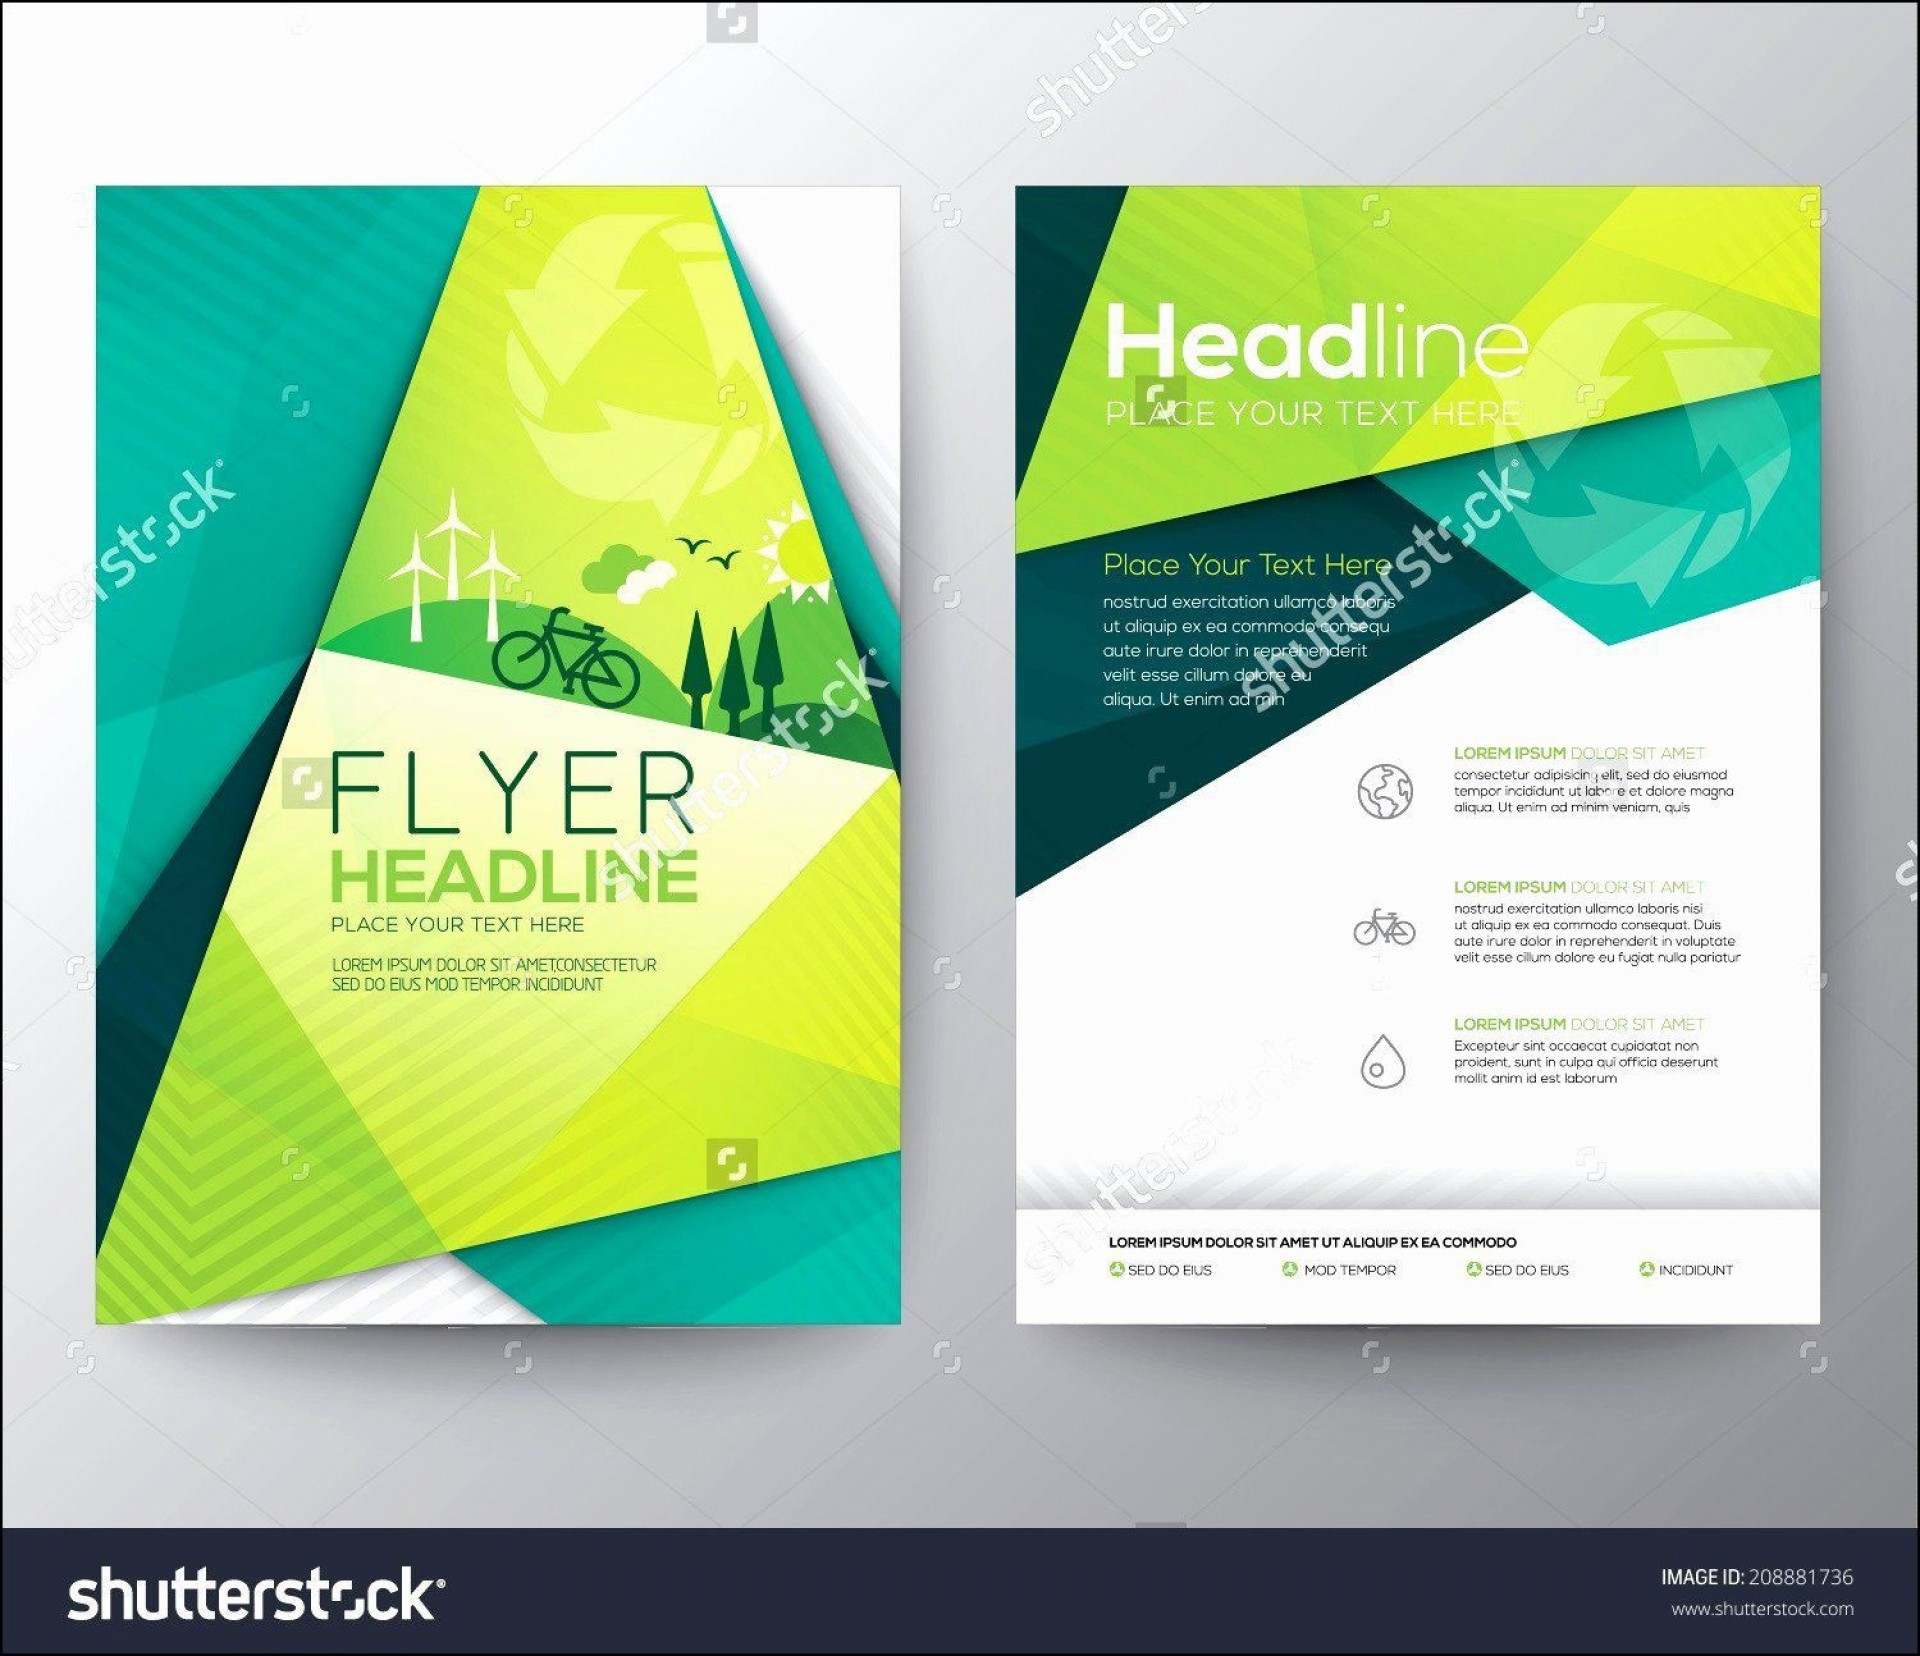 000 Dreaded Free Download Flyer Template Photo  Photoshop For Microsoft Word Downloadable Publisher1920